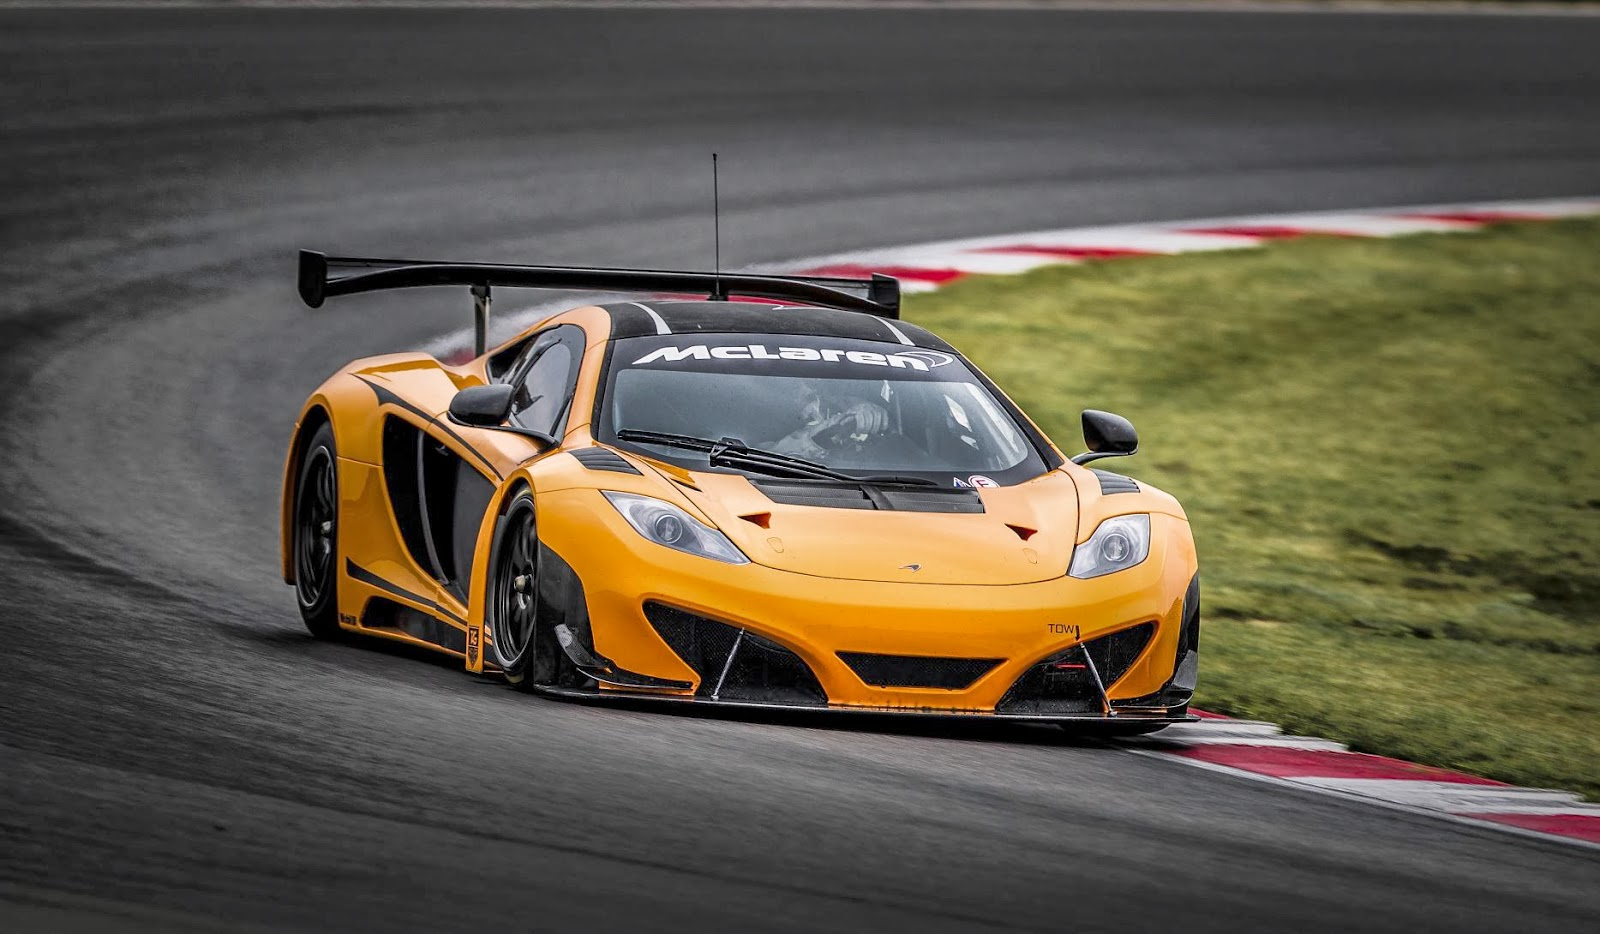 McLaren 12C GT3 will be go forward at Pirelli Word Challenge for 2014